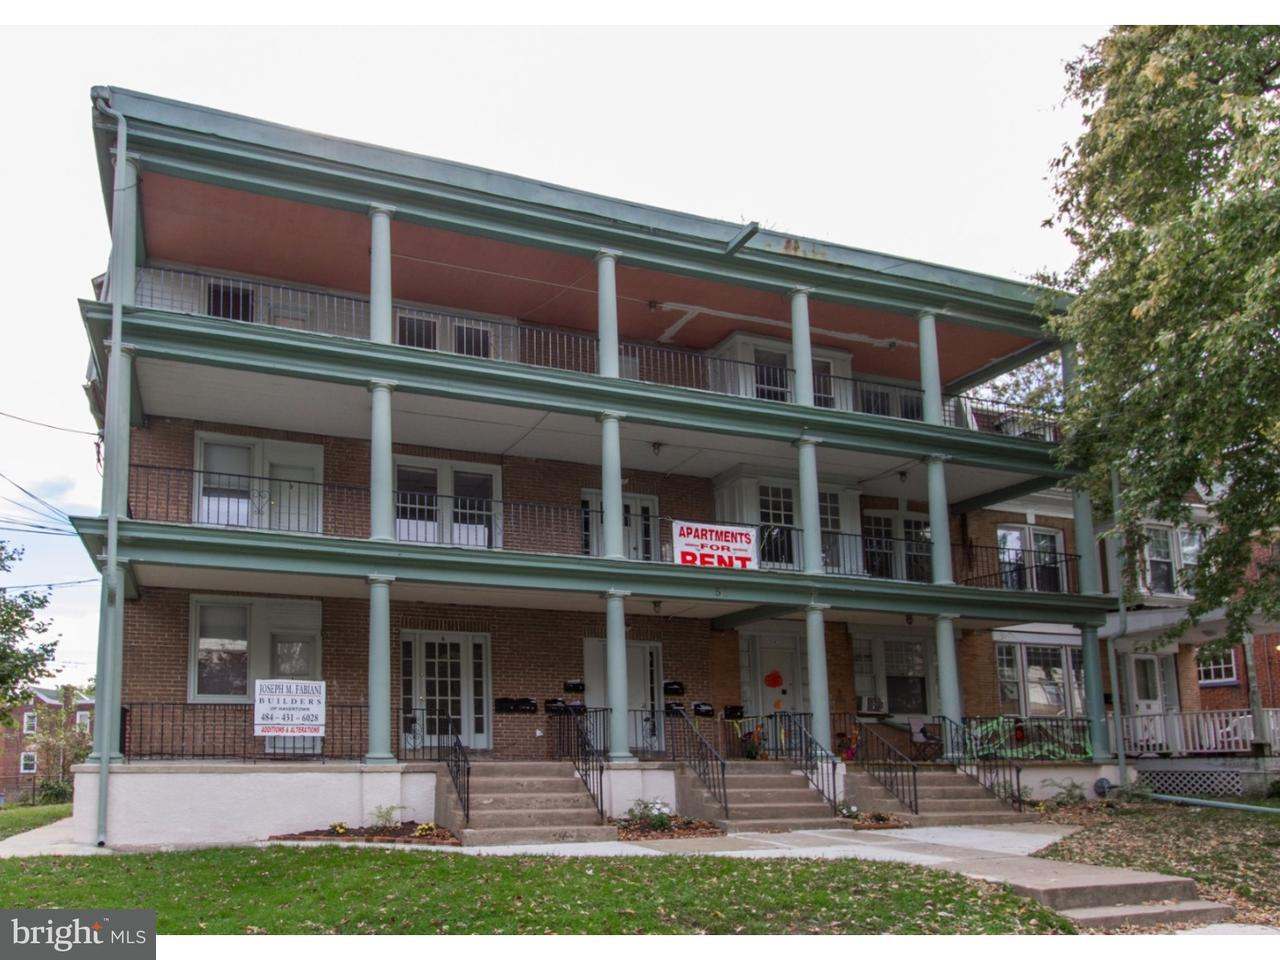 Single Family Home for Rent at 53,52-54 E STRATFORD AVE #H Lansdowne, Pennsylvania 19050 United States